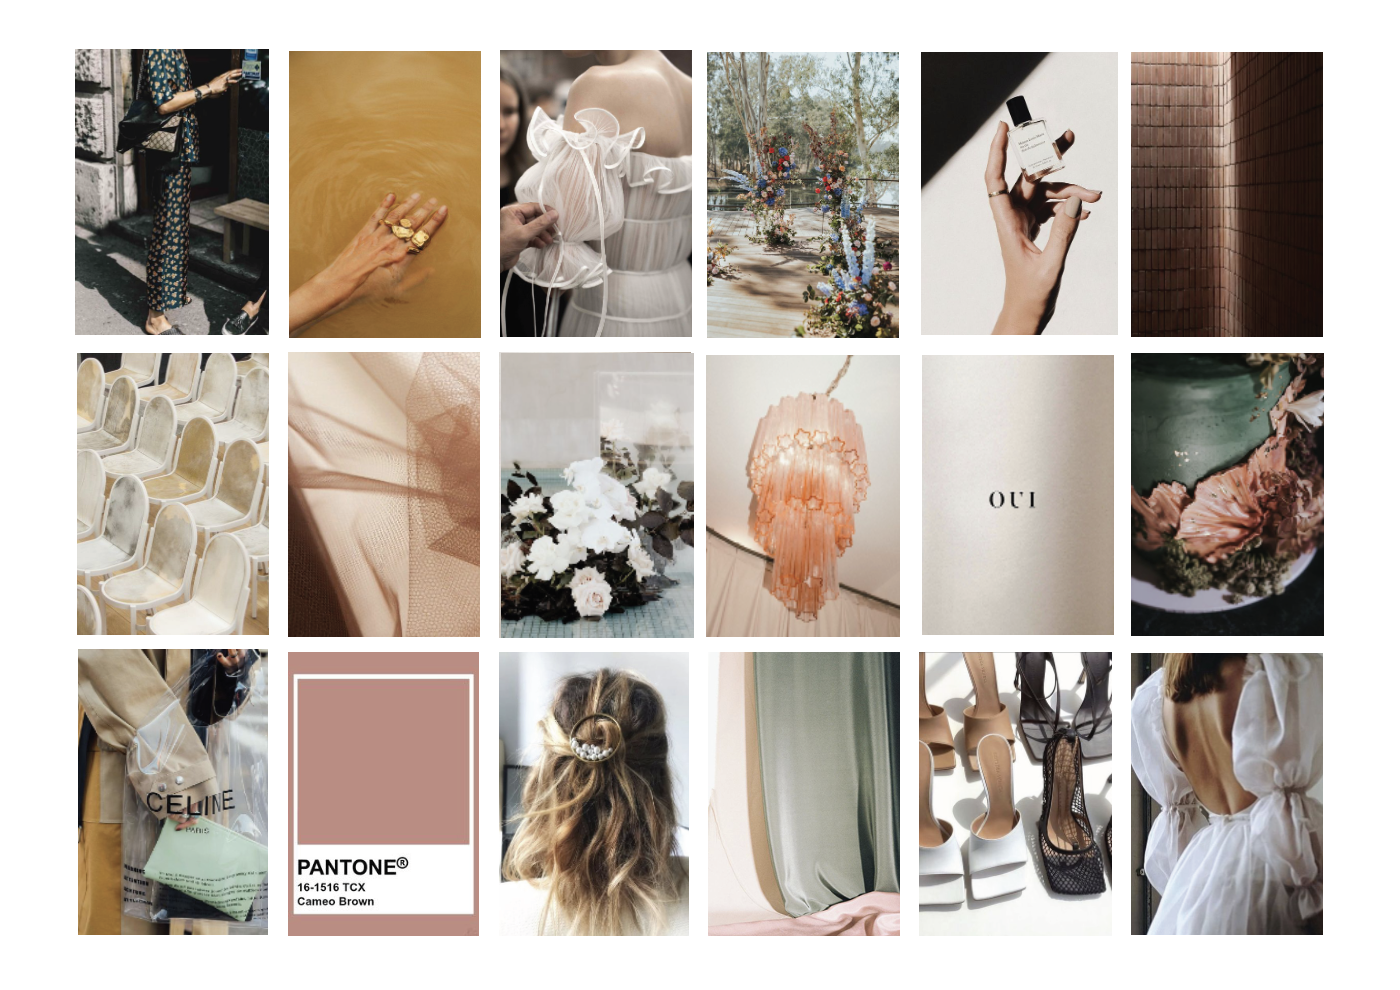 Images taken by  Tarlie Russel  and  Smokey Oscar  and all other images sourced from our  Pinterest .